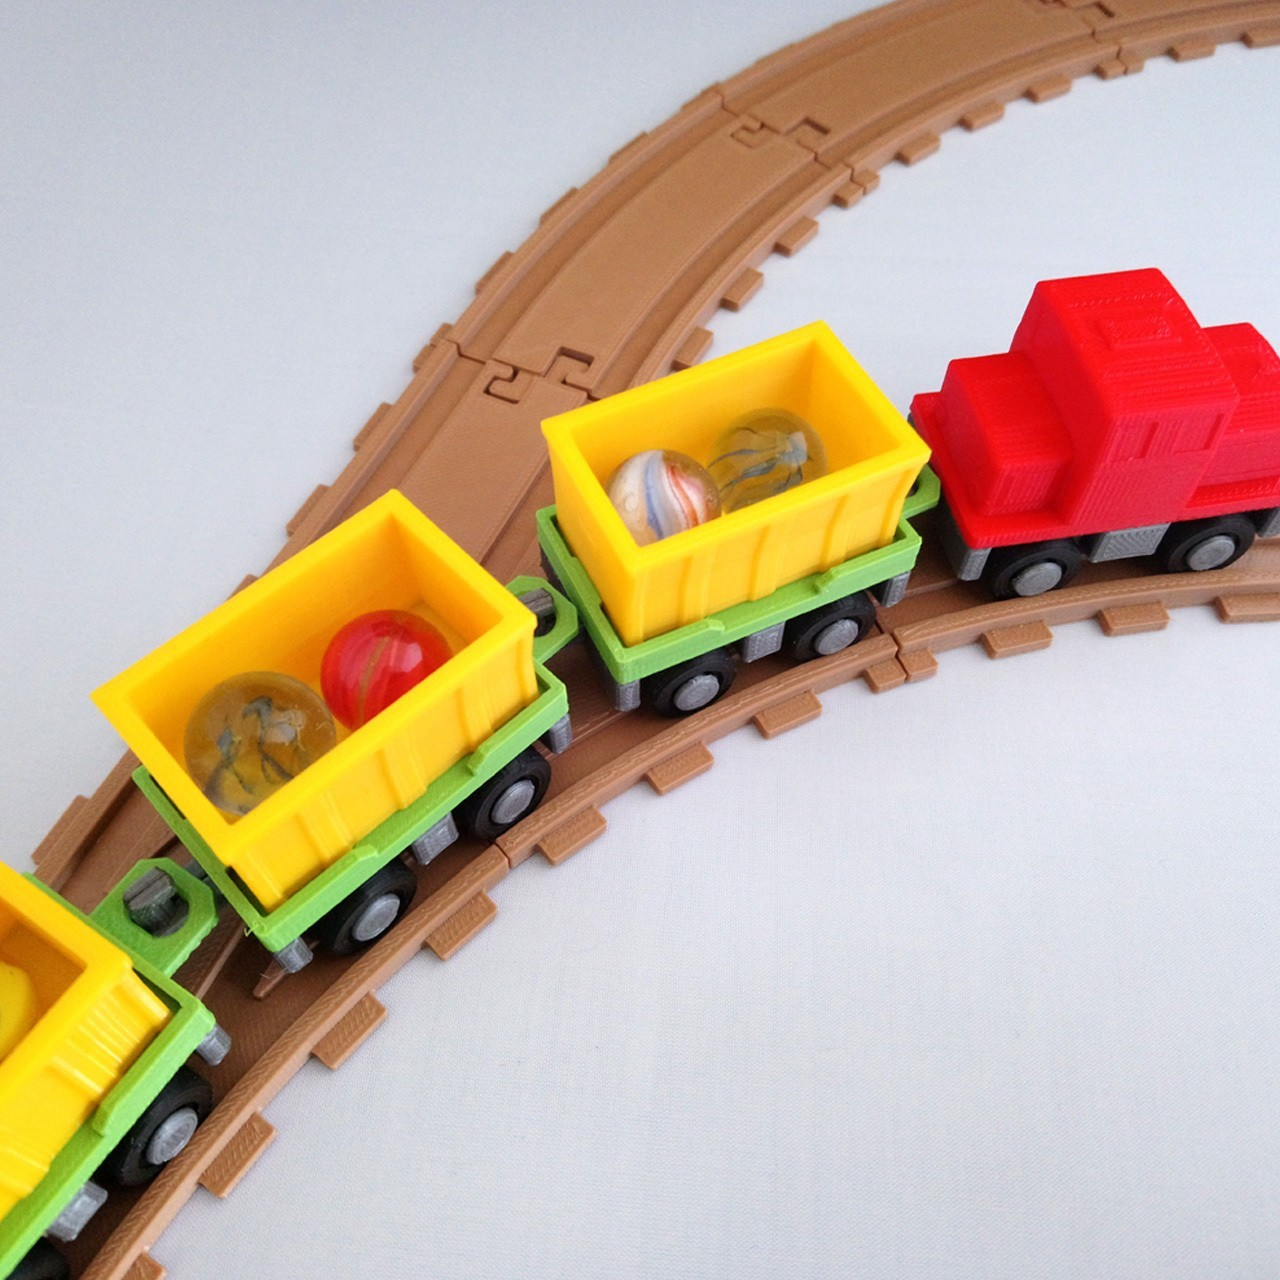 smalltoys-trainswitches04.jpg Download STL file SmallToys - Railway tracks - Switches • 3D print design, Wabby